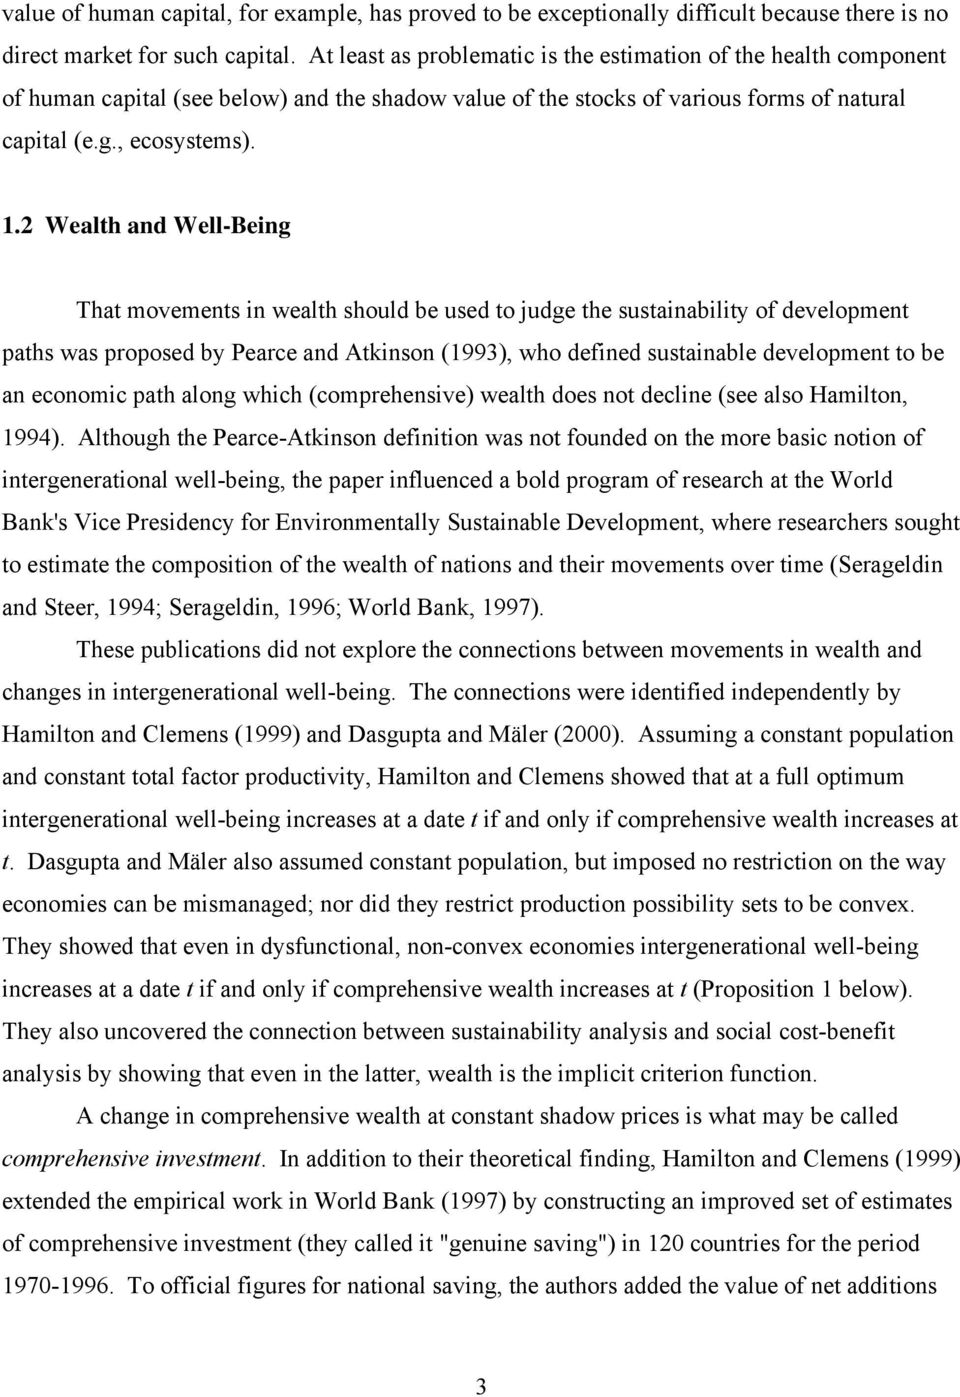 2 Wealth and Well-Being That movements in wealth should be used to judge the sustainability of development paths was proposed by Pearce and Atkinson (1993), who defined sustainable development to be